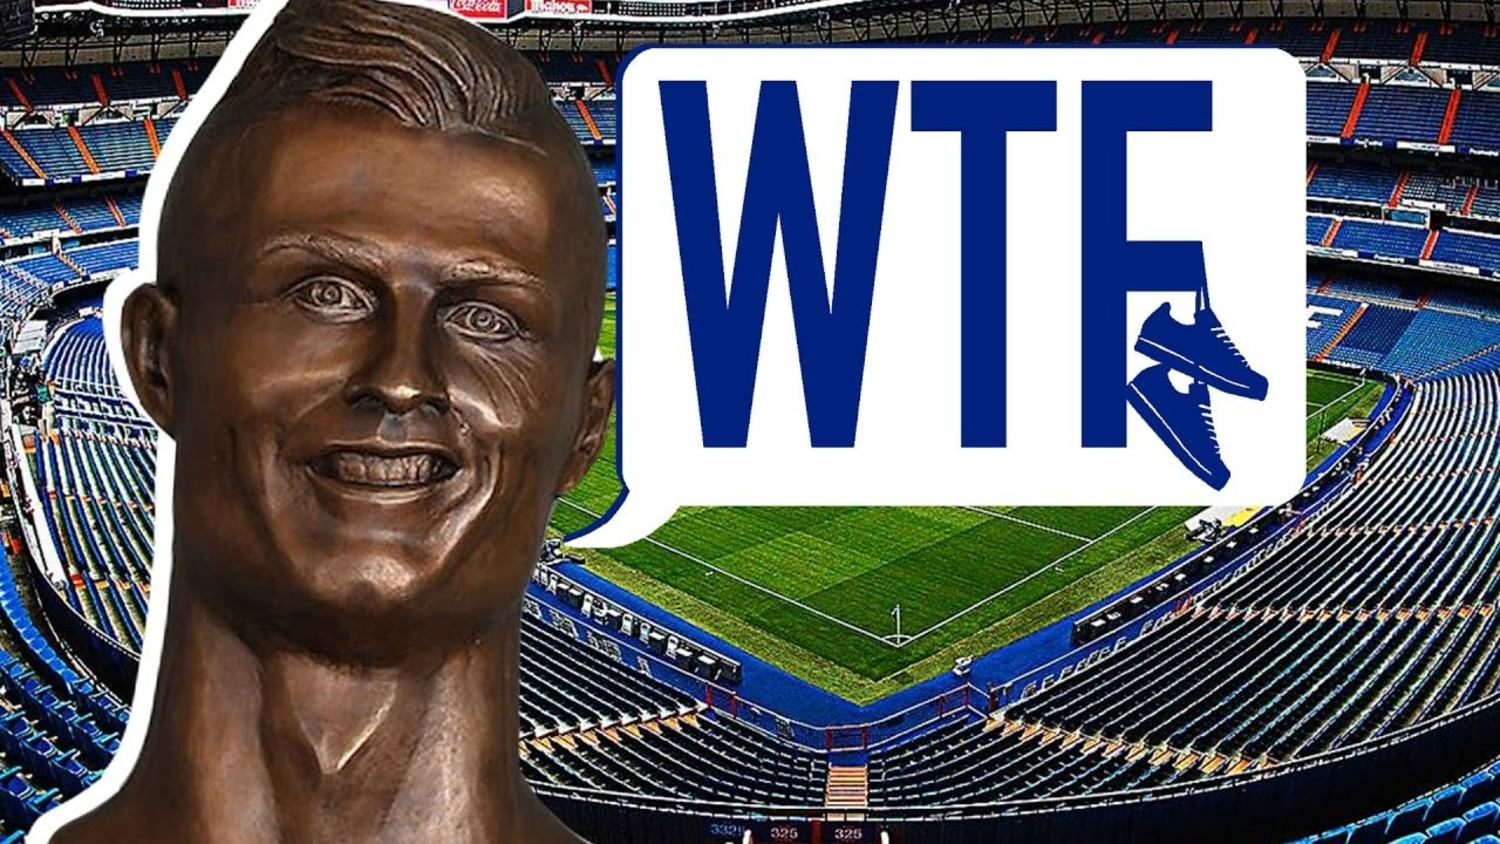 WTF Is Up With That Ronaldo Statue?